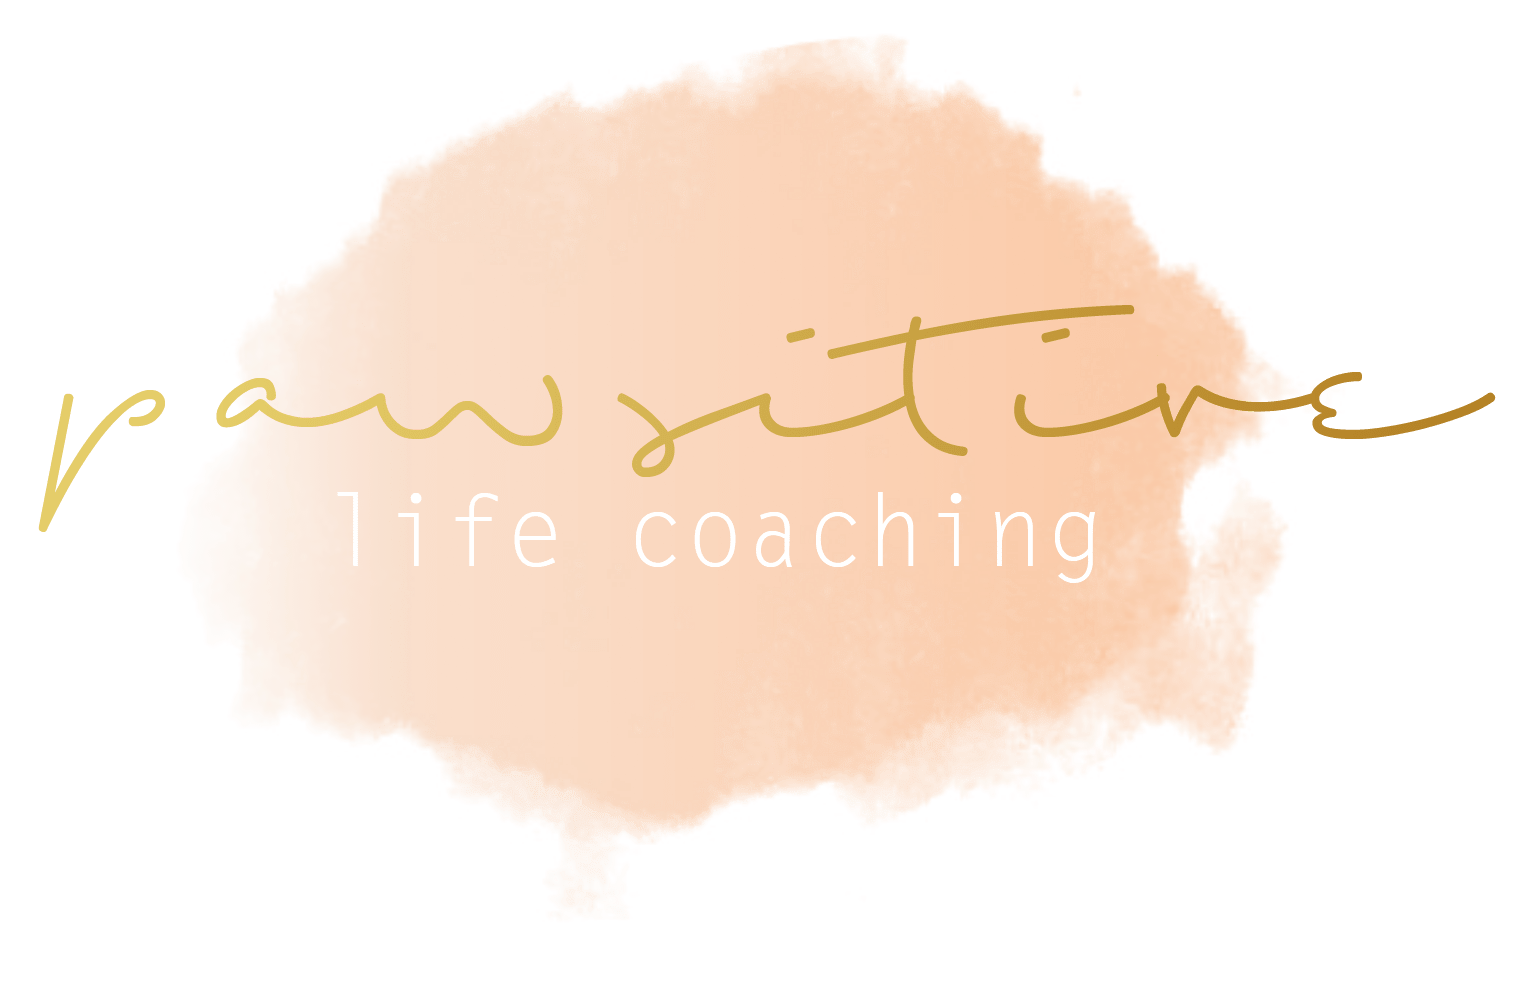 pawsitive-life-coaching-logo